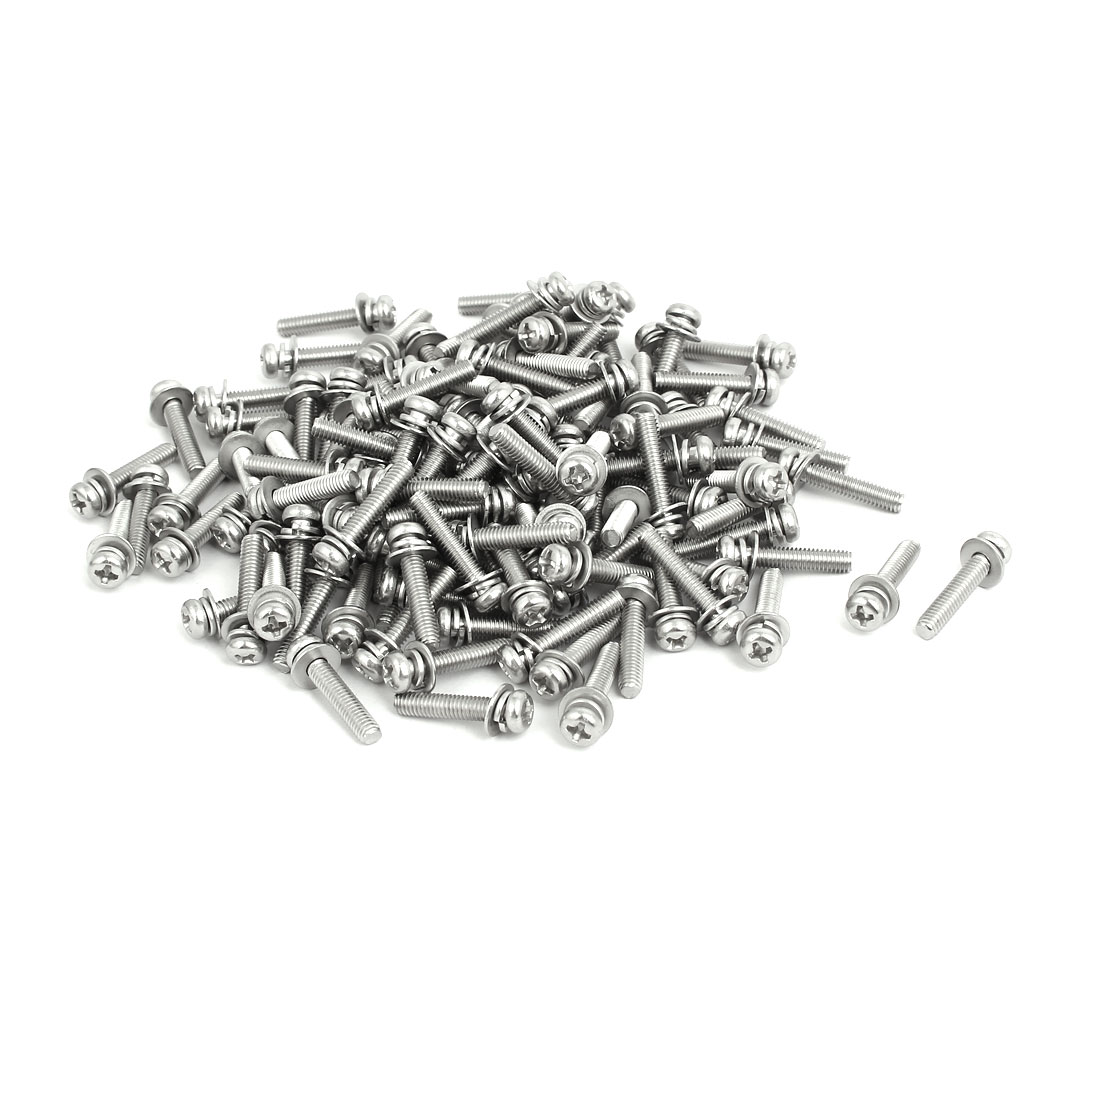 M4x20mm 304 Stainless Steel Phillips Pan Head Bolt Screw w Washer 150 Sets